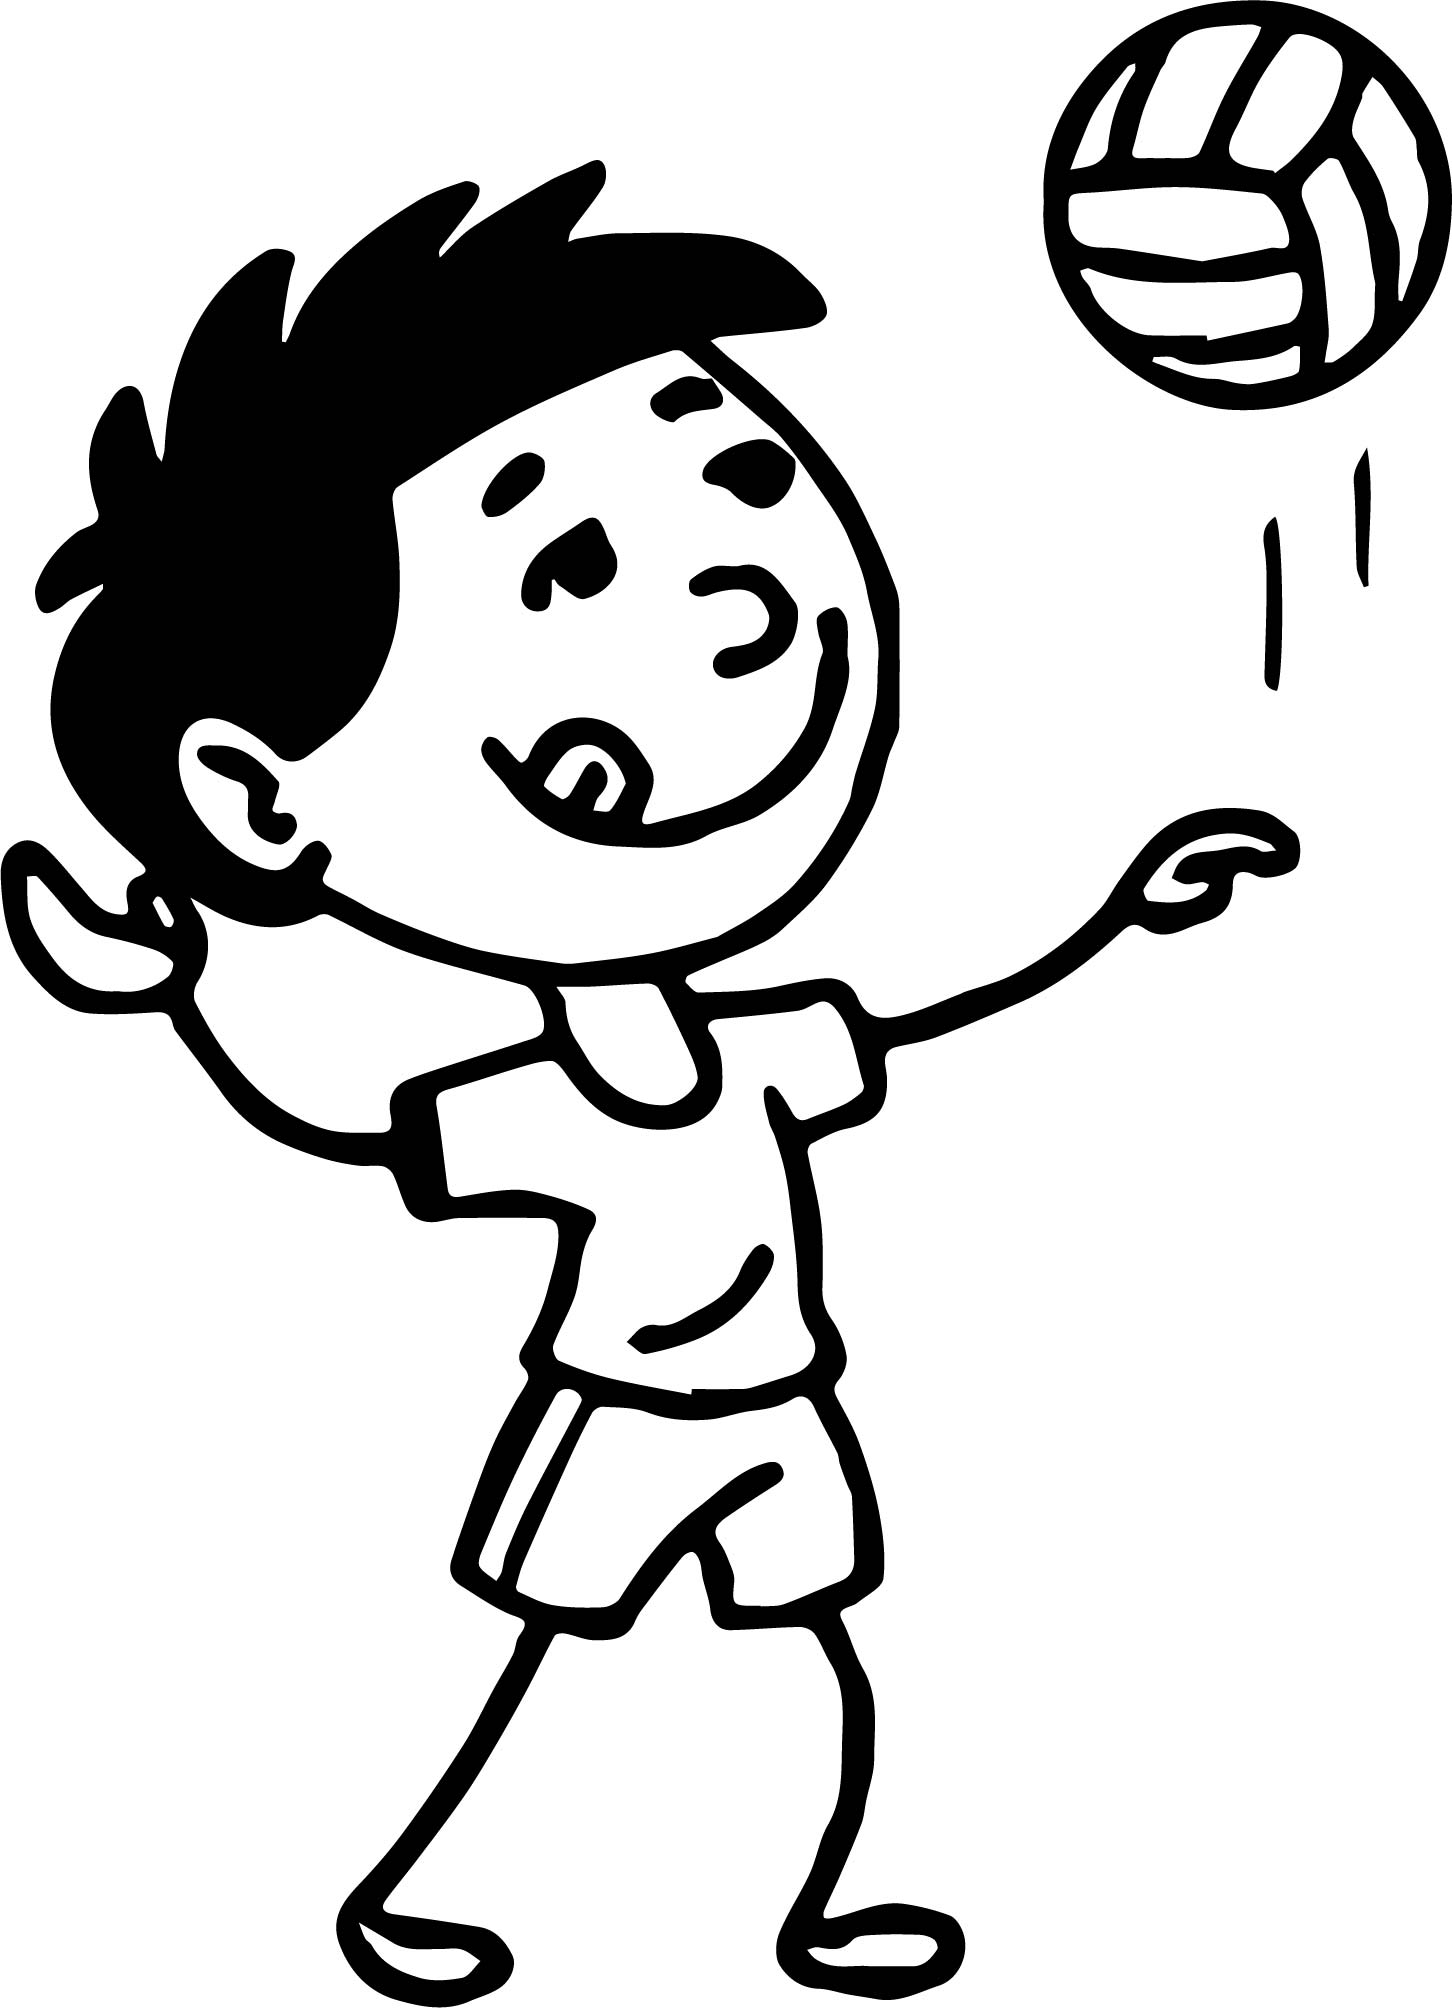 Serving Volleyball On The Beach Coloring Page